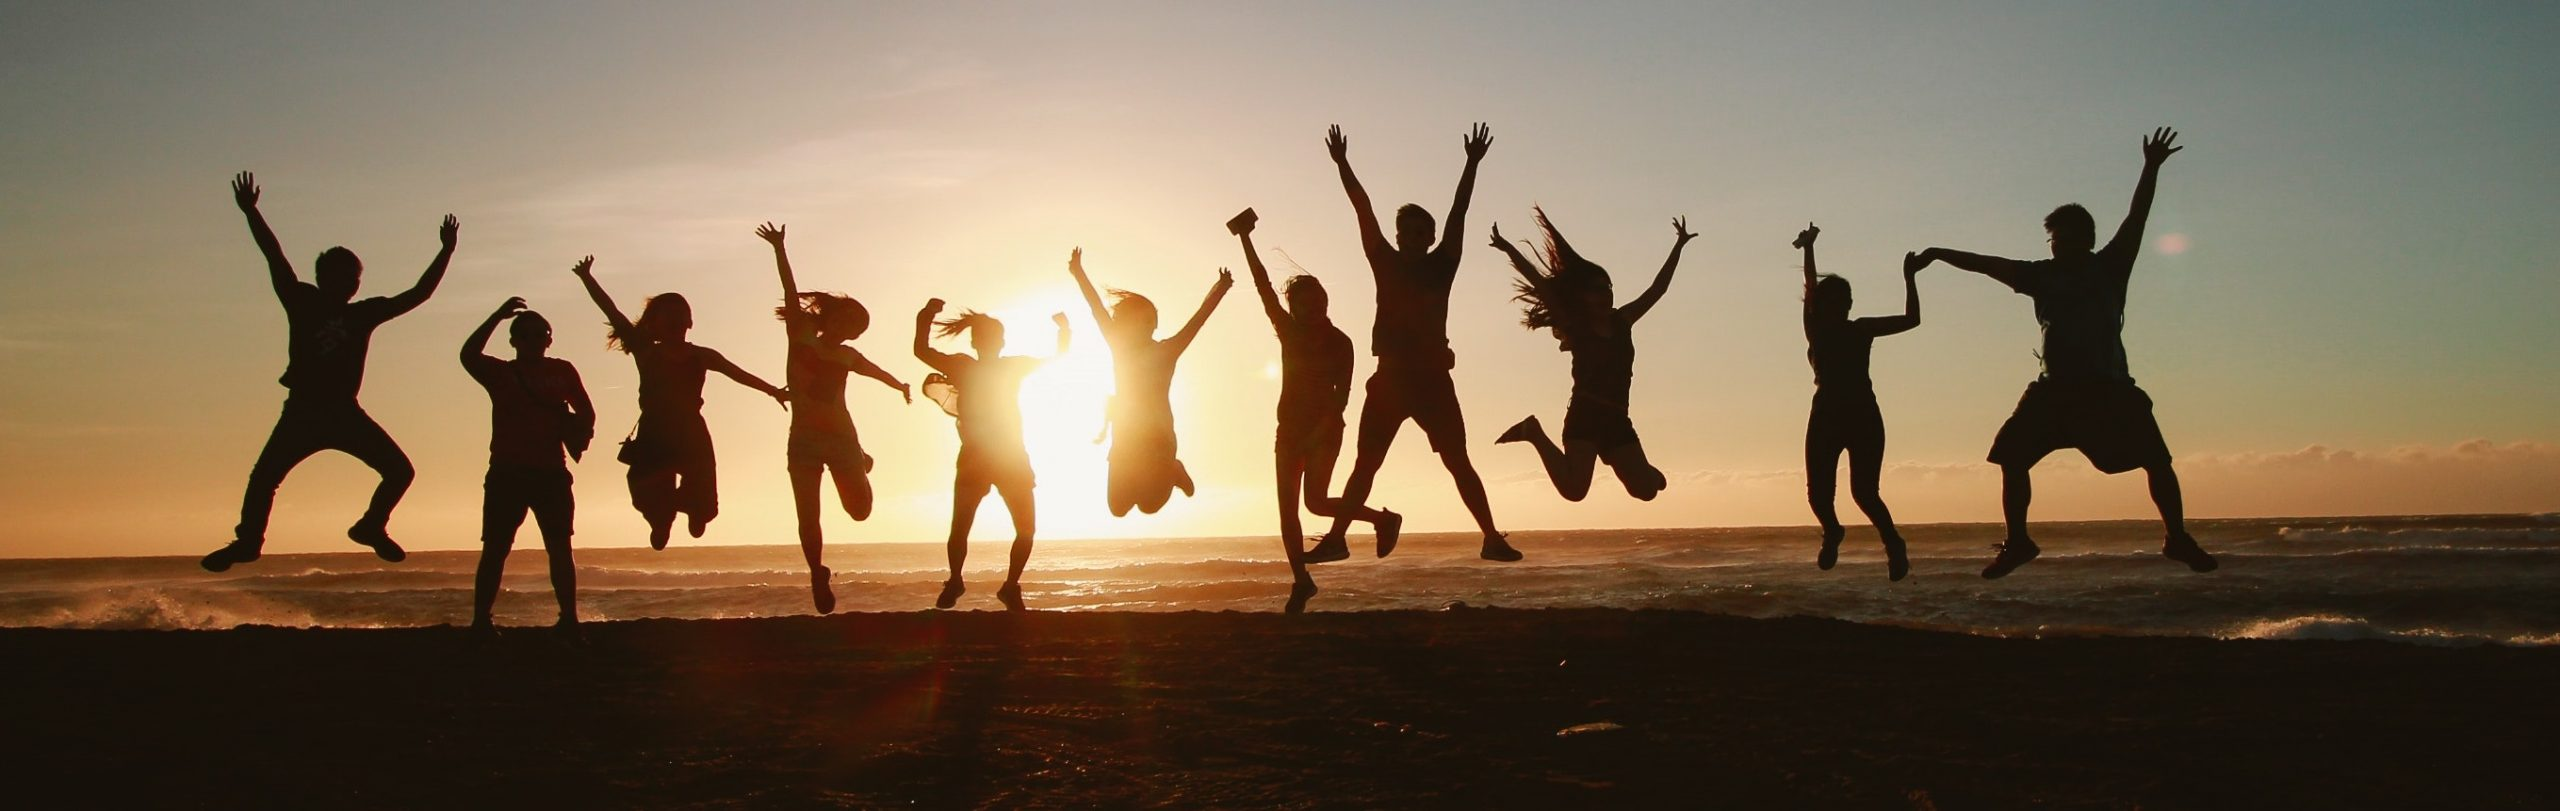 silhouette-photography-of-group-of-people-jumping-during-1000445 a